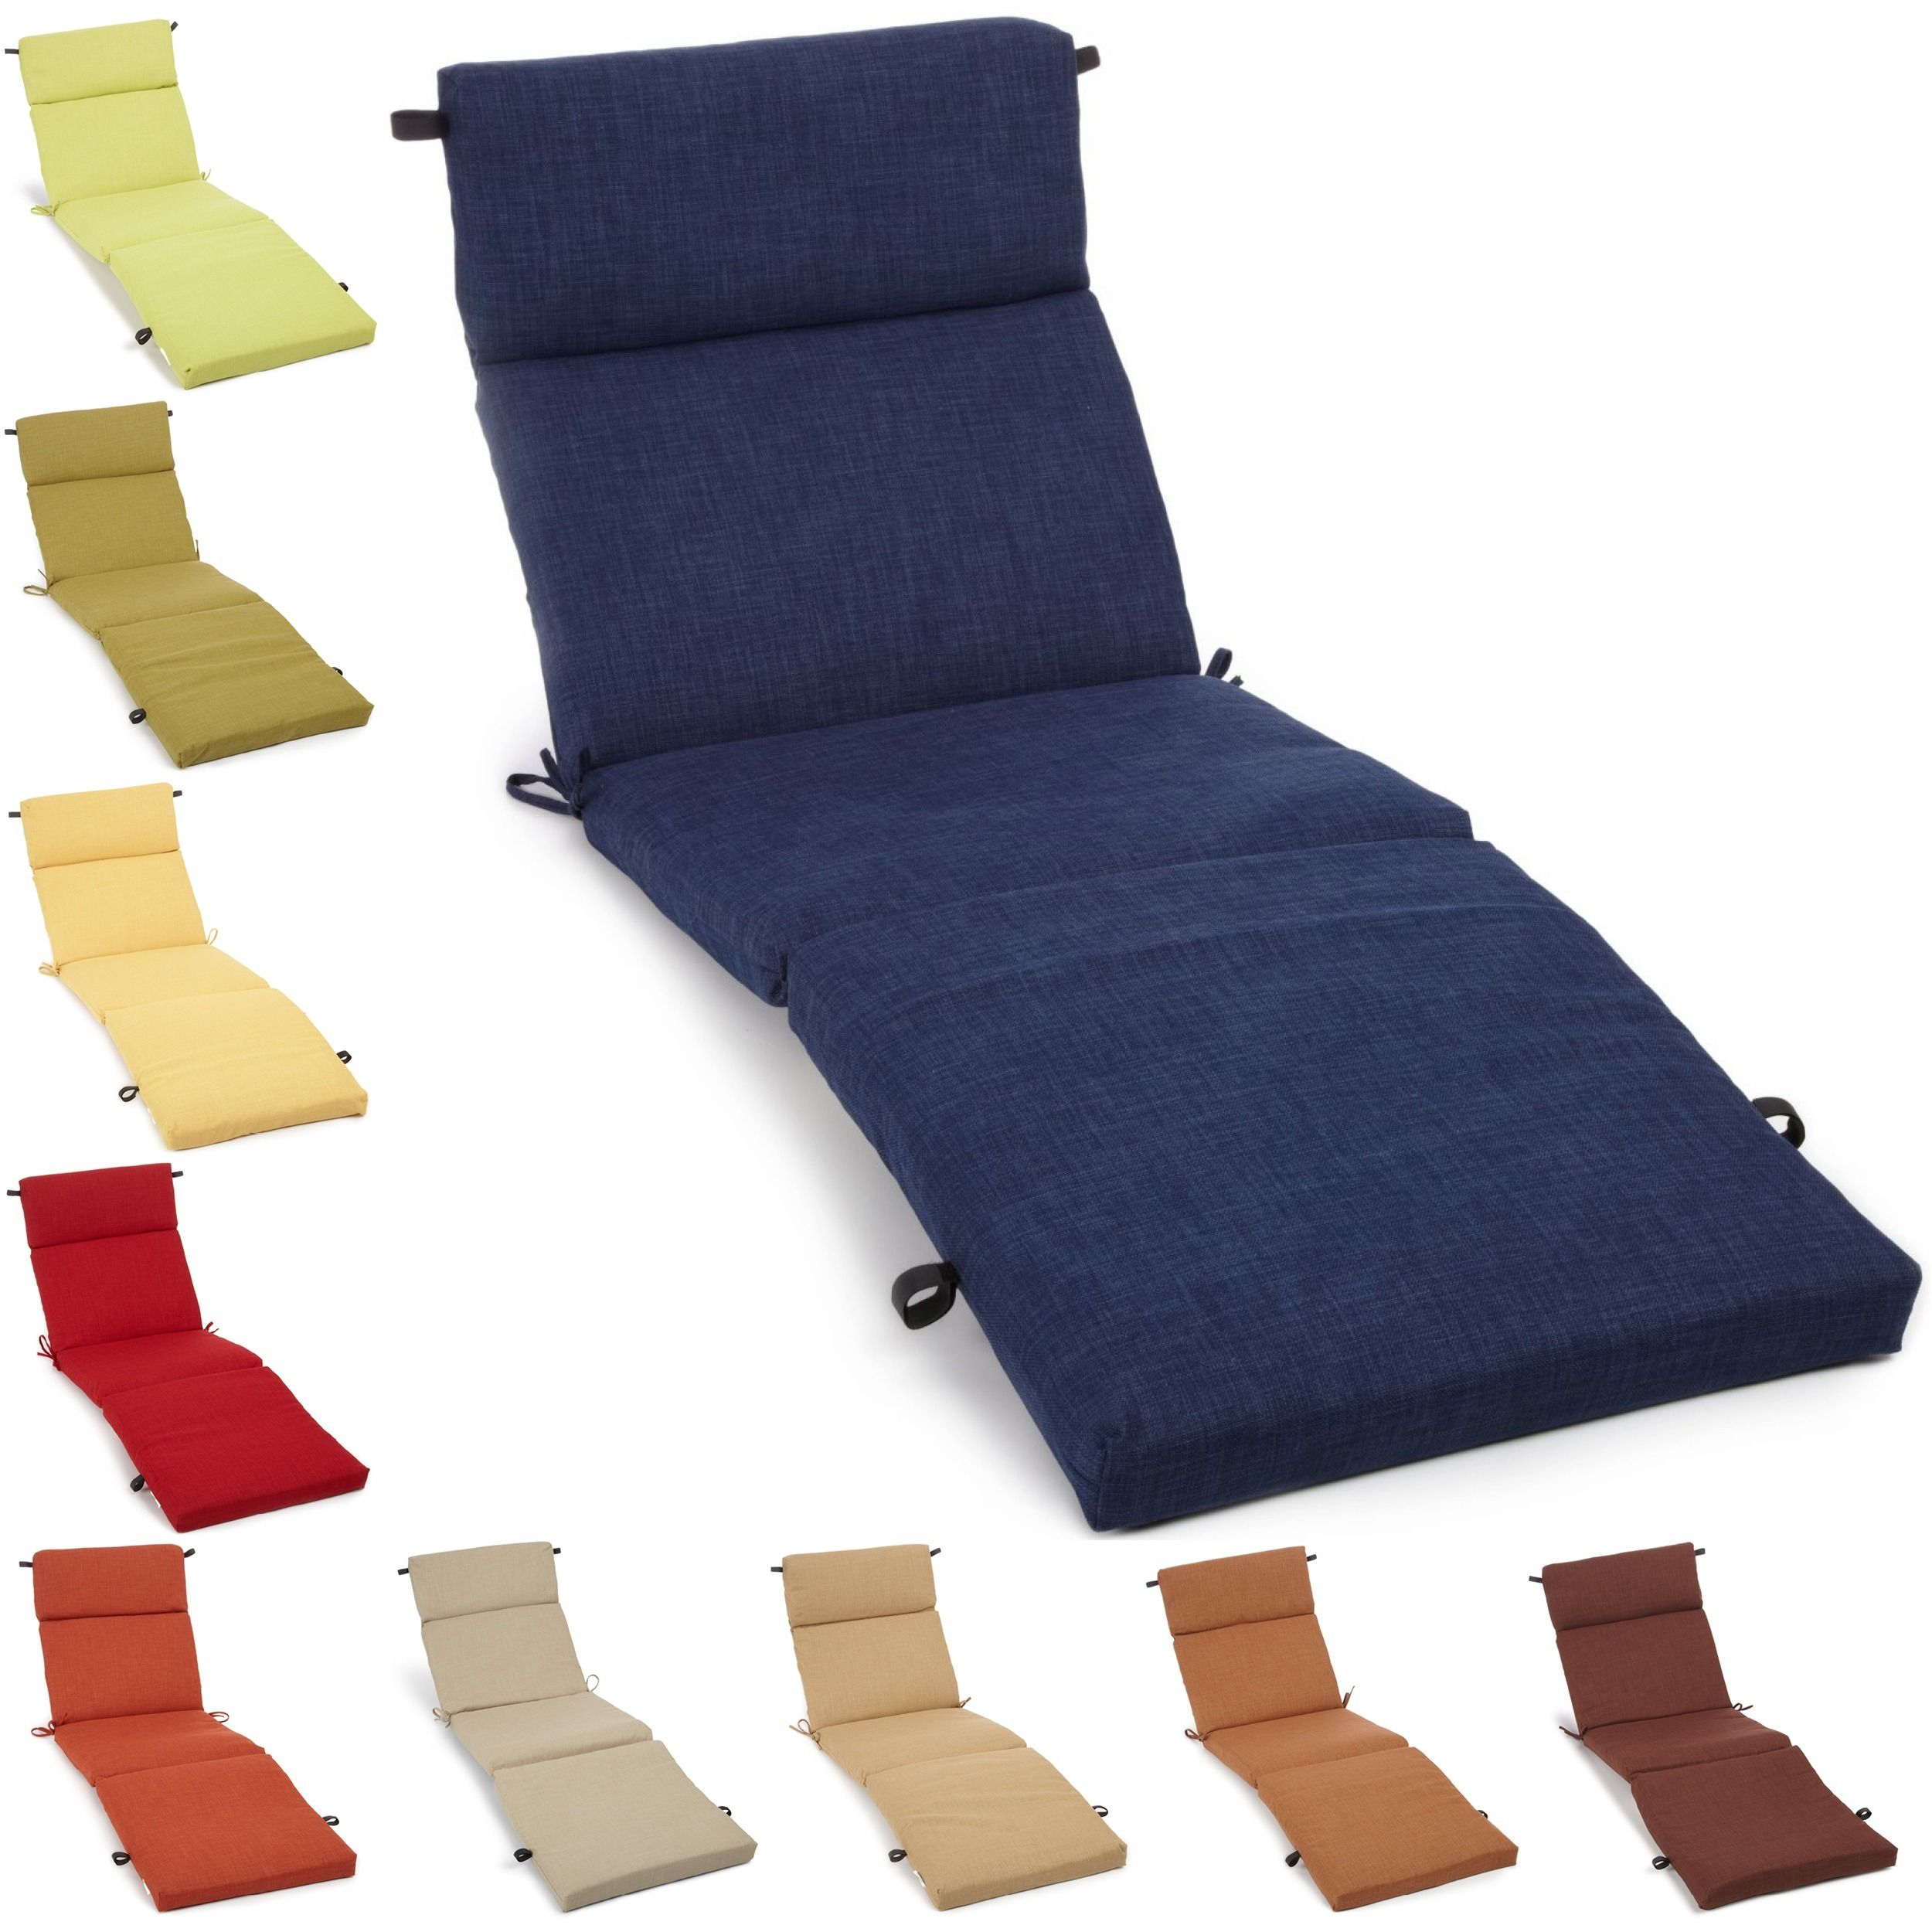 This outdoor chaise lounge cushion is a stylish and comfortable